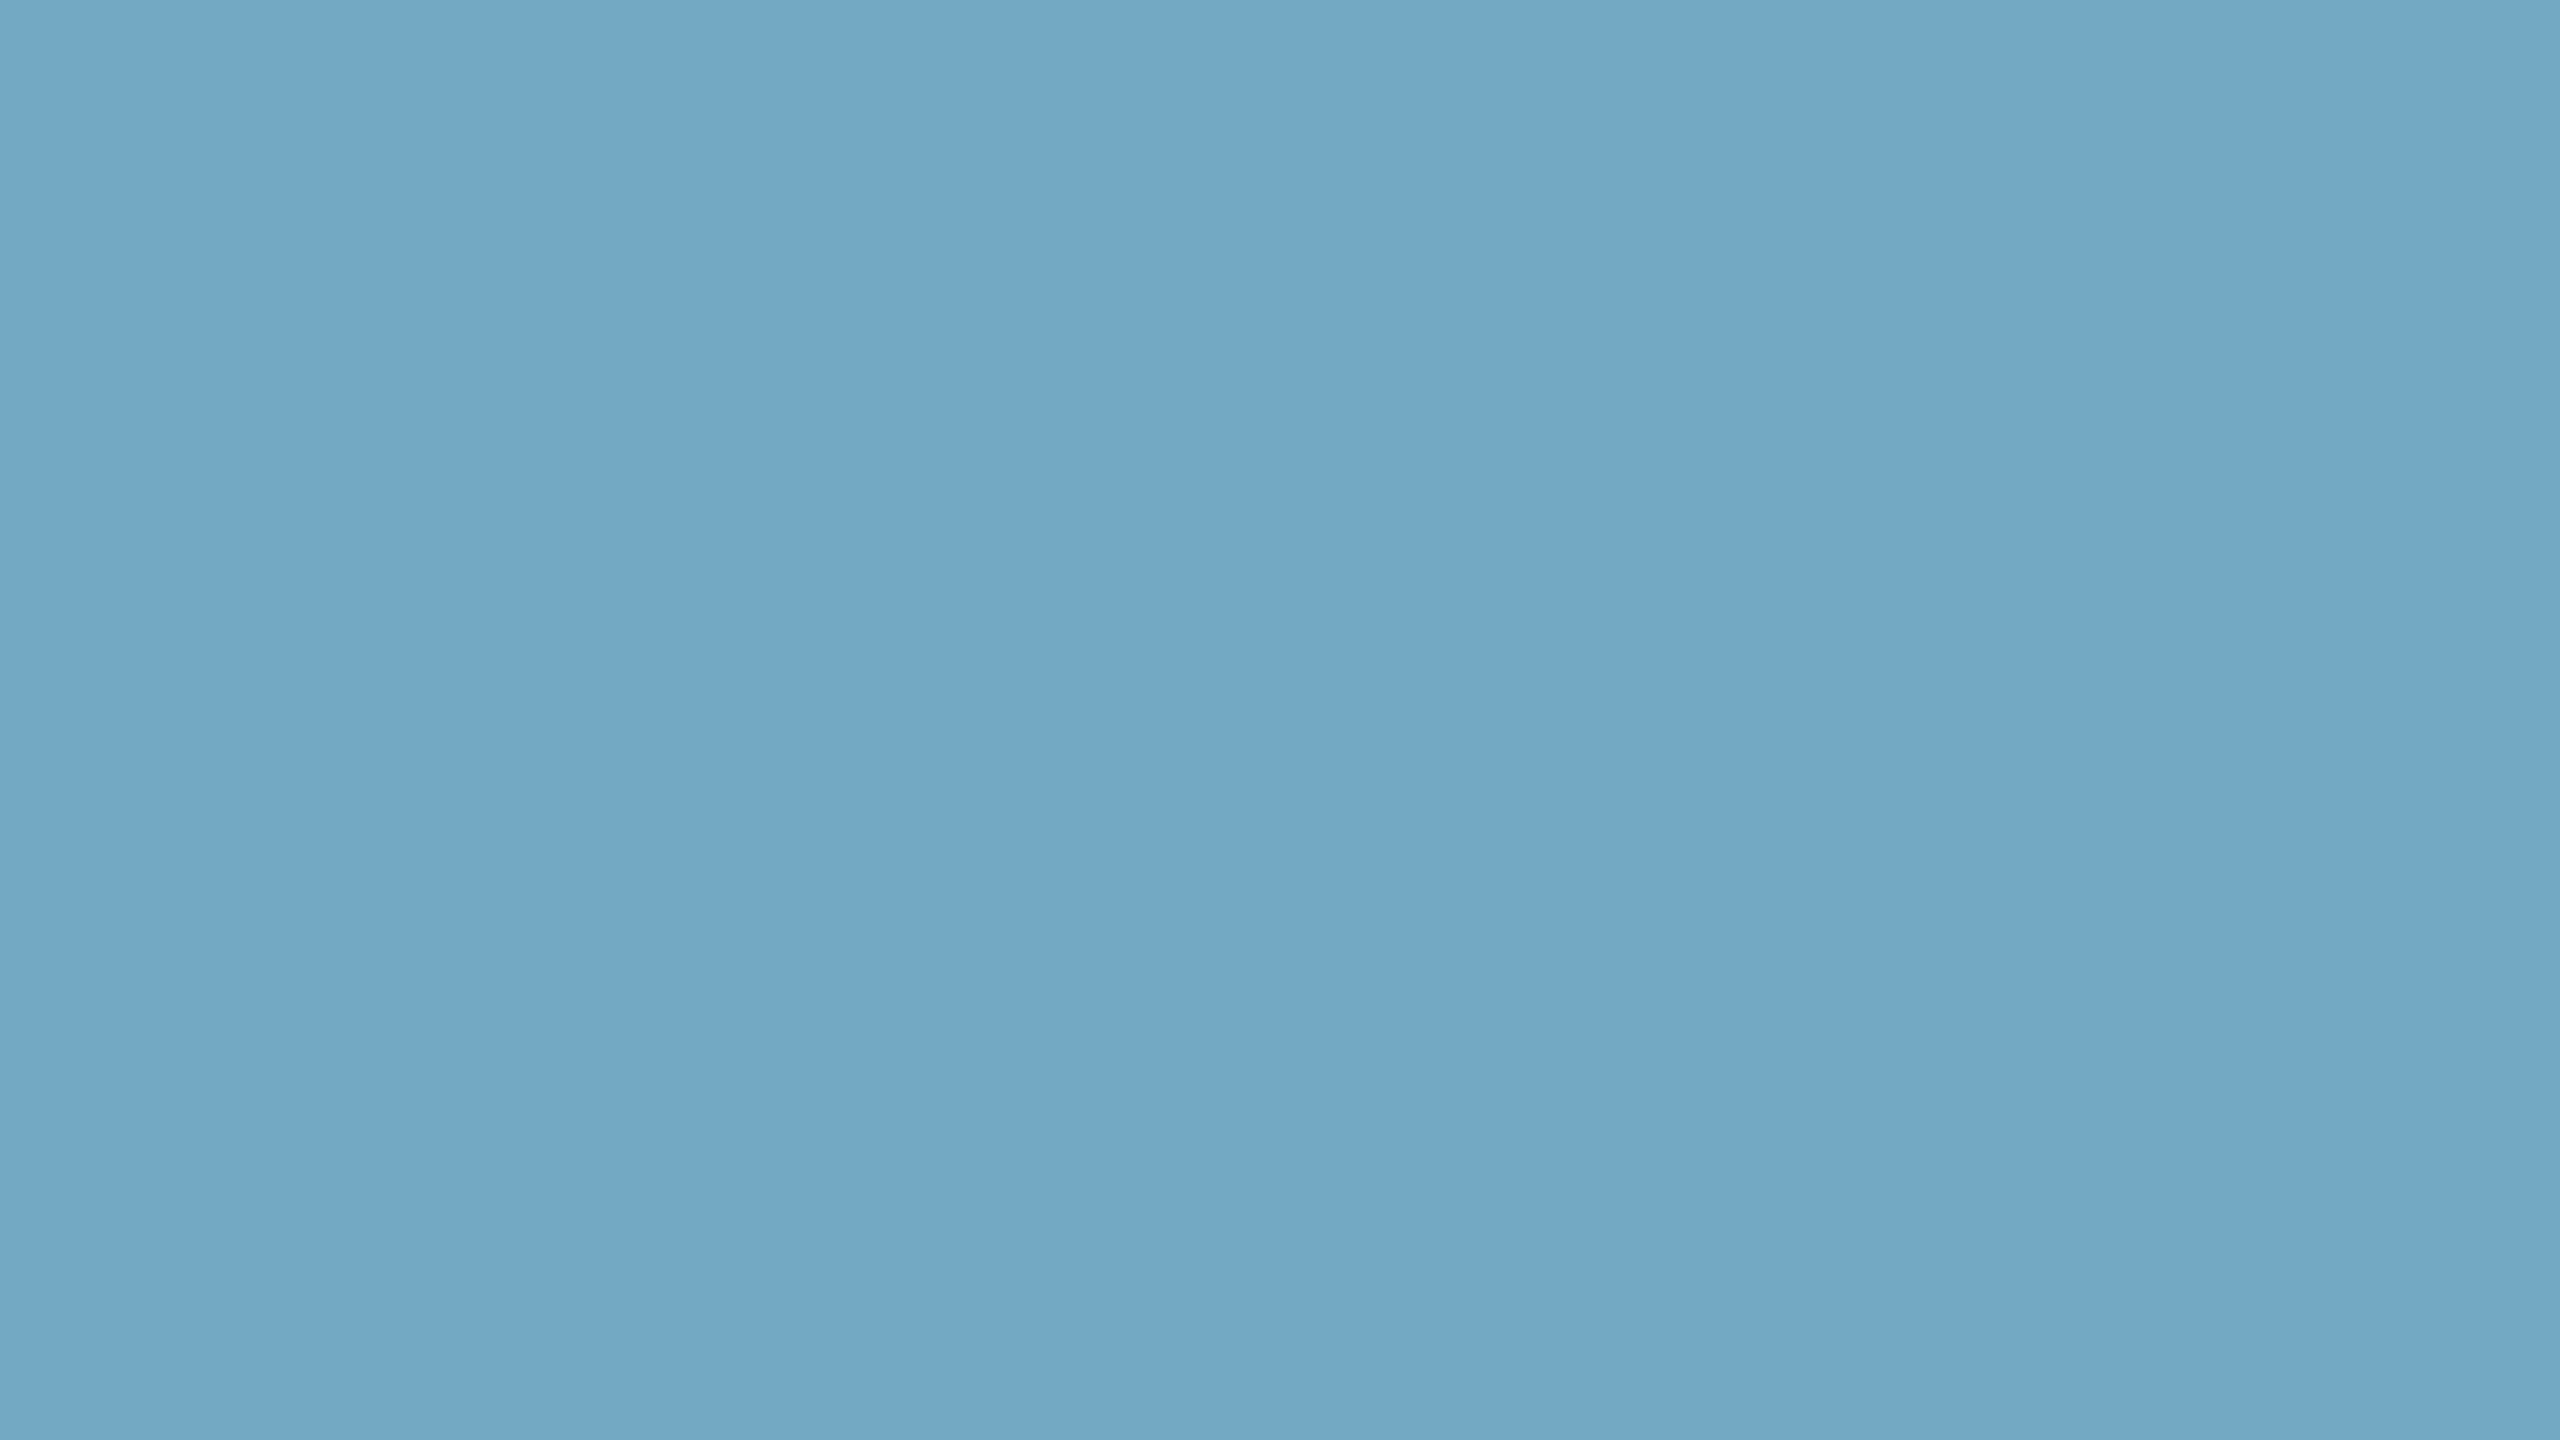 2560x1440 Moonstone Blue Solid Color Background